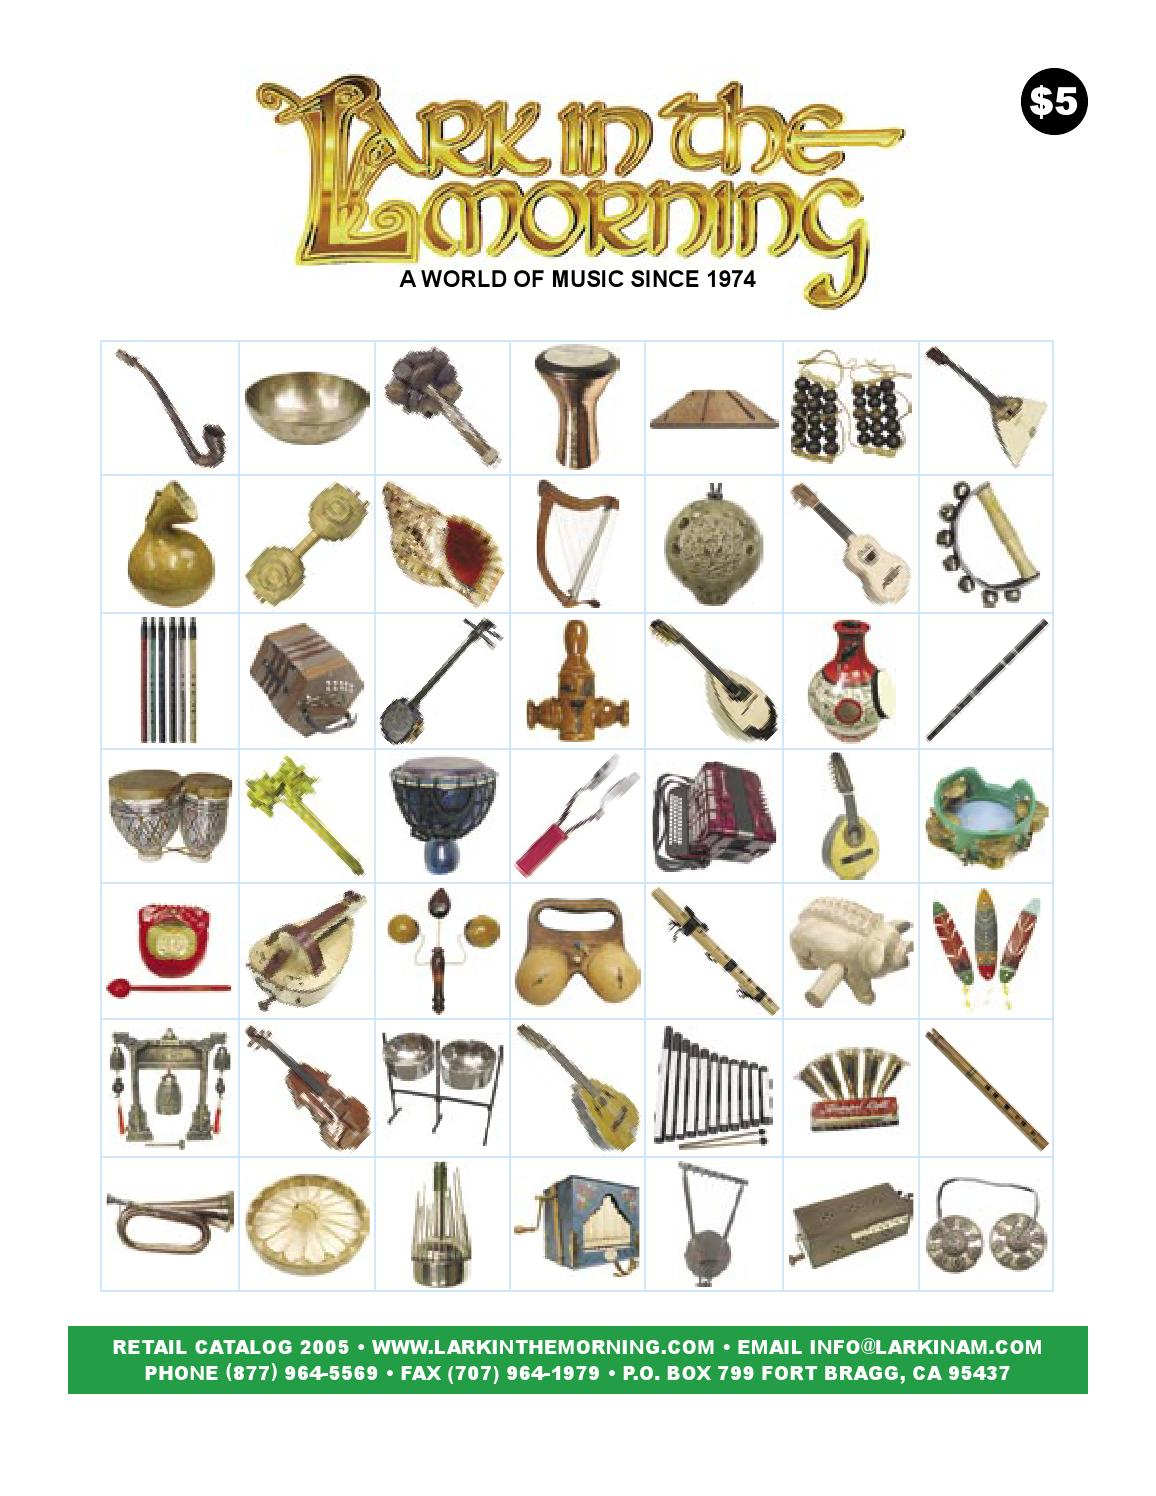 Lark In The Morning Retail Catalog 2005 By Issuu 1929 Rca Theremin Vintage Radio Wiring Diagram Binatanicom